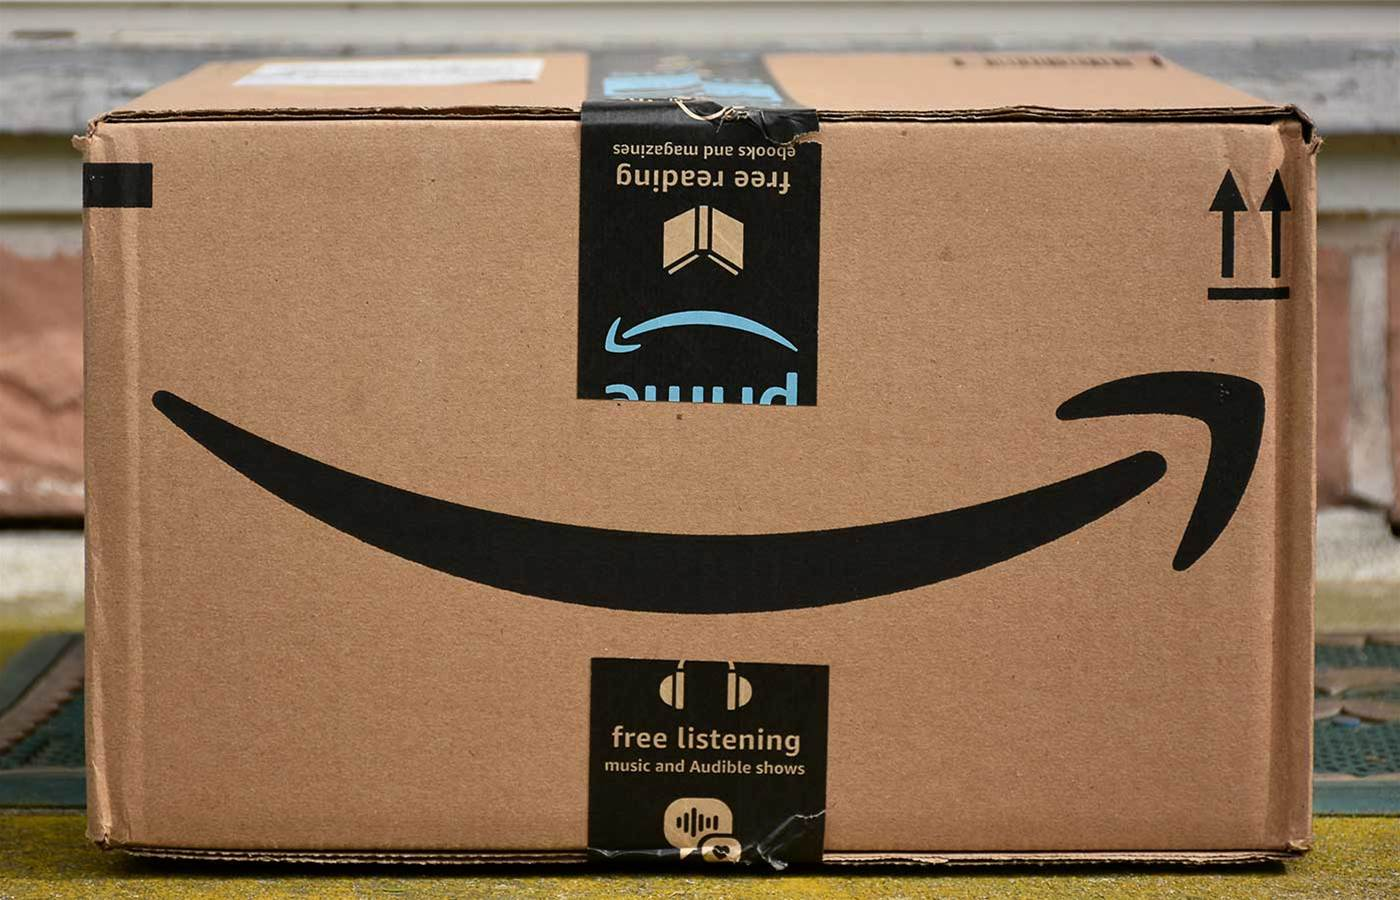 Amazon.com crashes at the start of major sales event